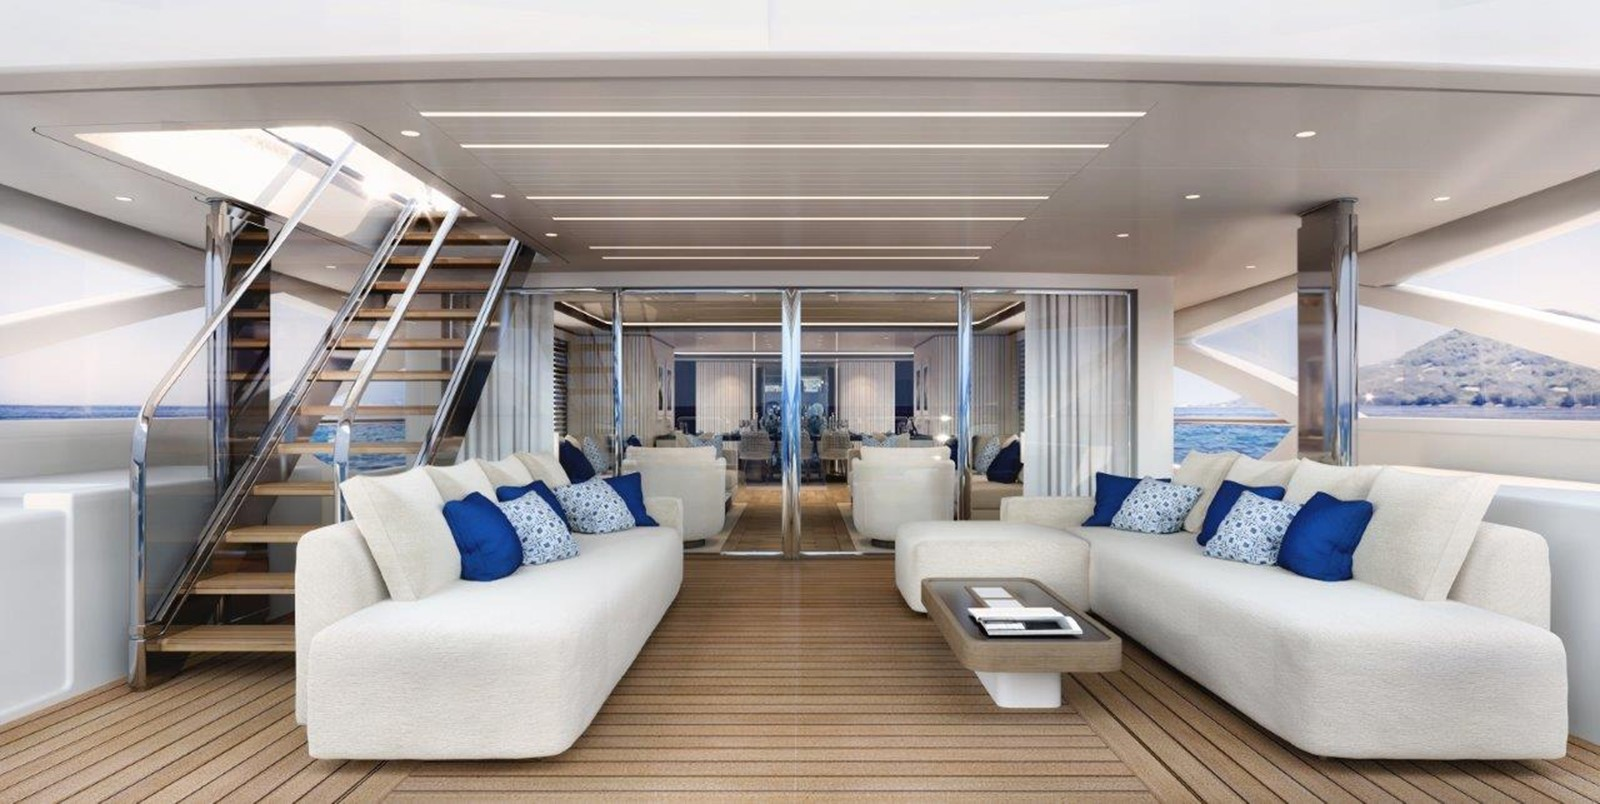 Main Deck Aft - Contemporary Interior 2022 BENETTI Steel and Aluminum M/Y Motor Yacht 2617394